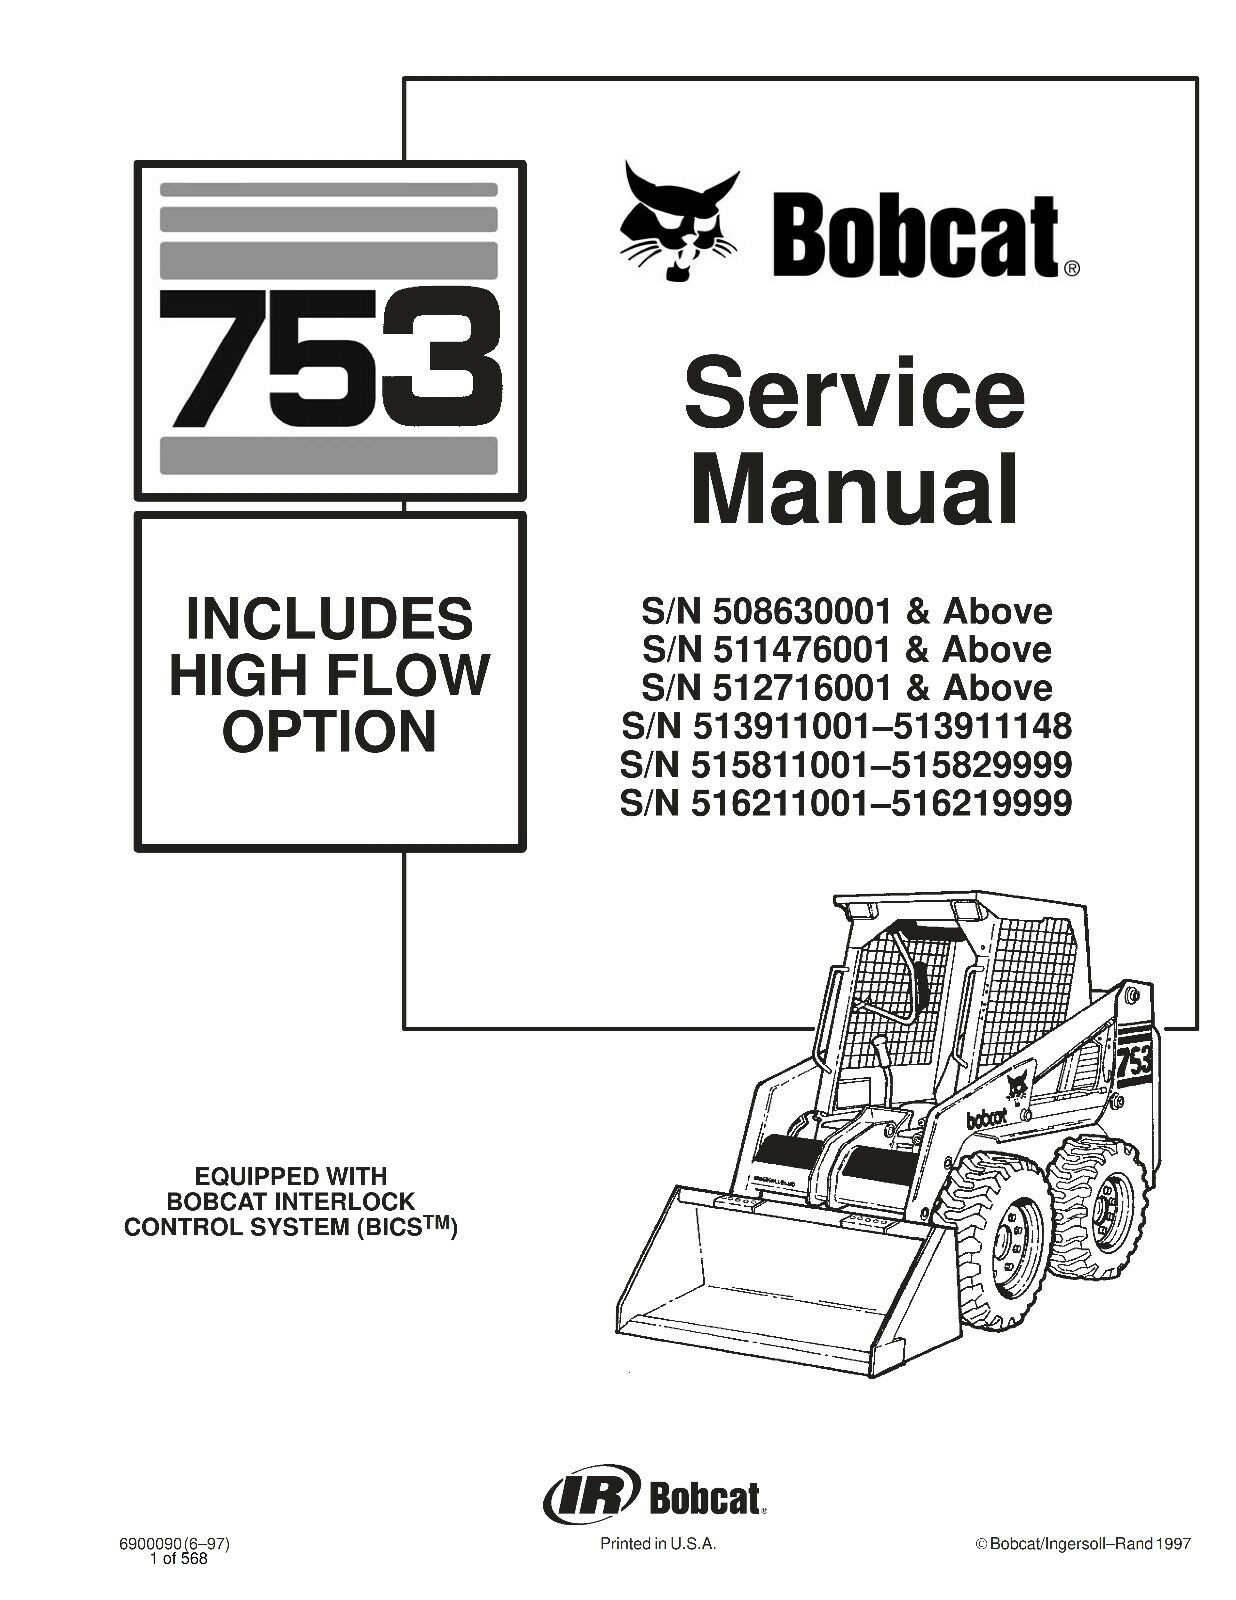 Bobcat 753 Wiring Diagram Manual Image collections